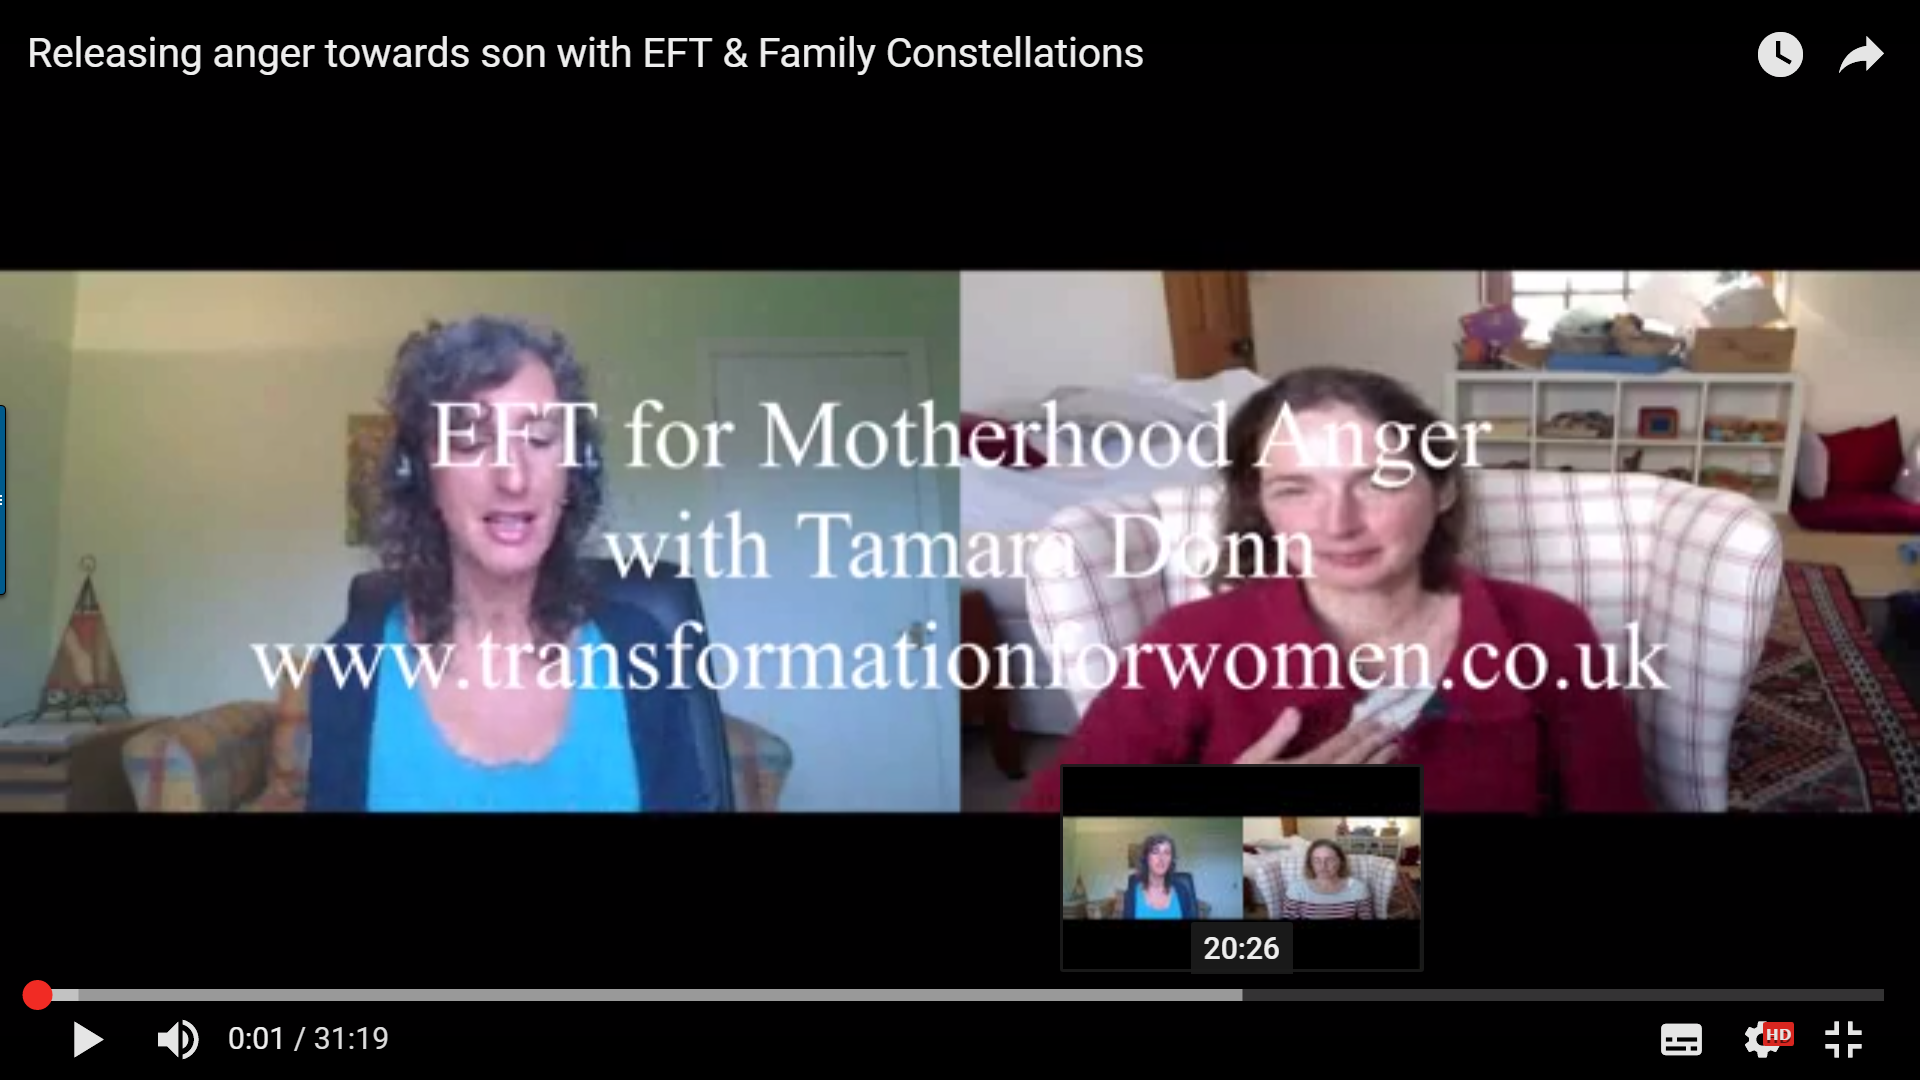 Releasng anger towards son with EFT